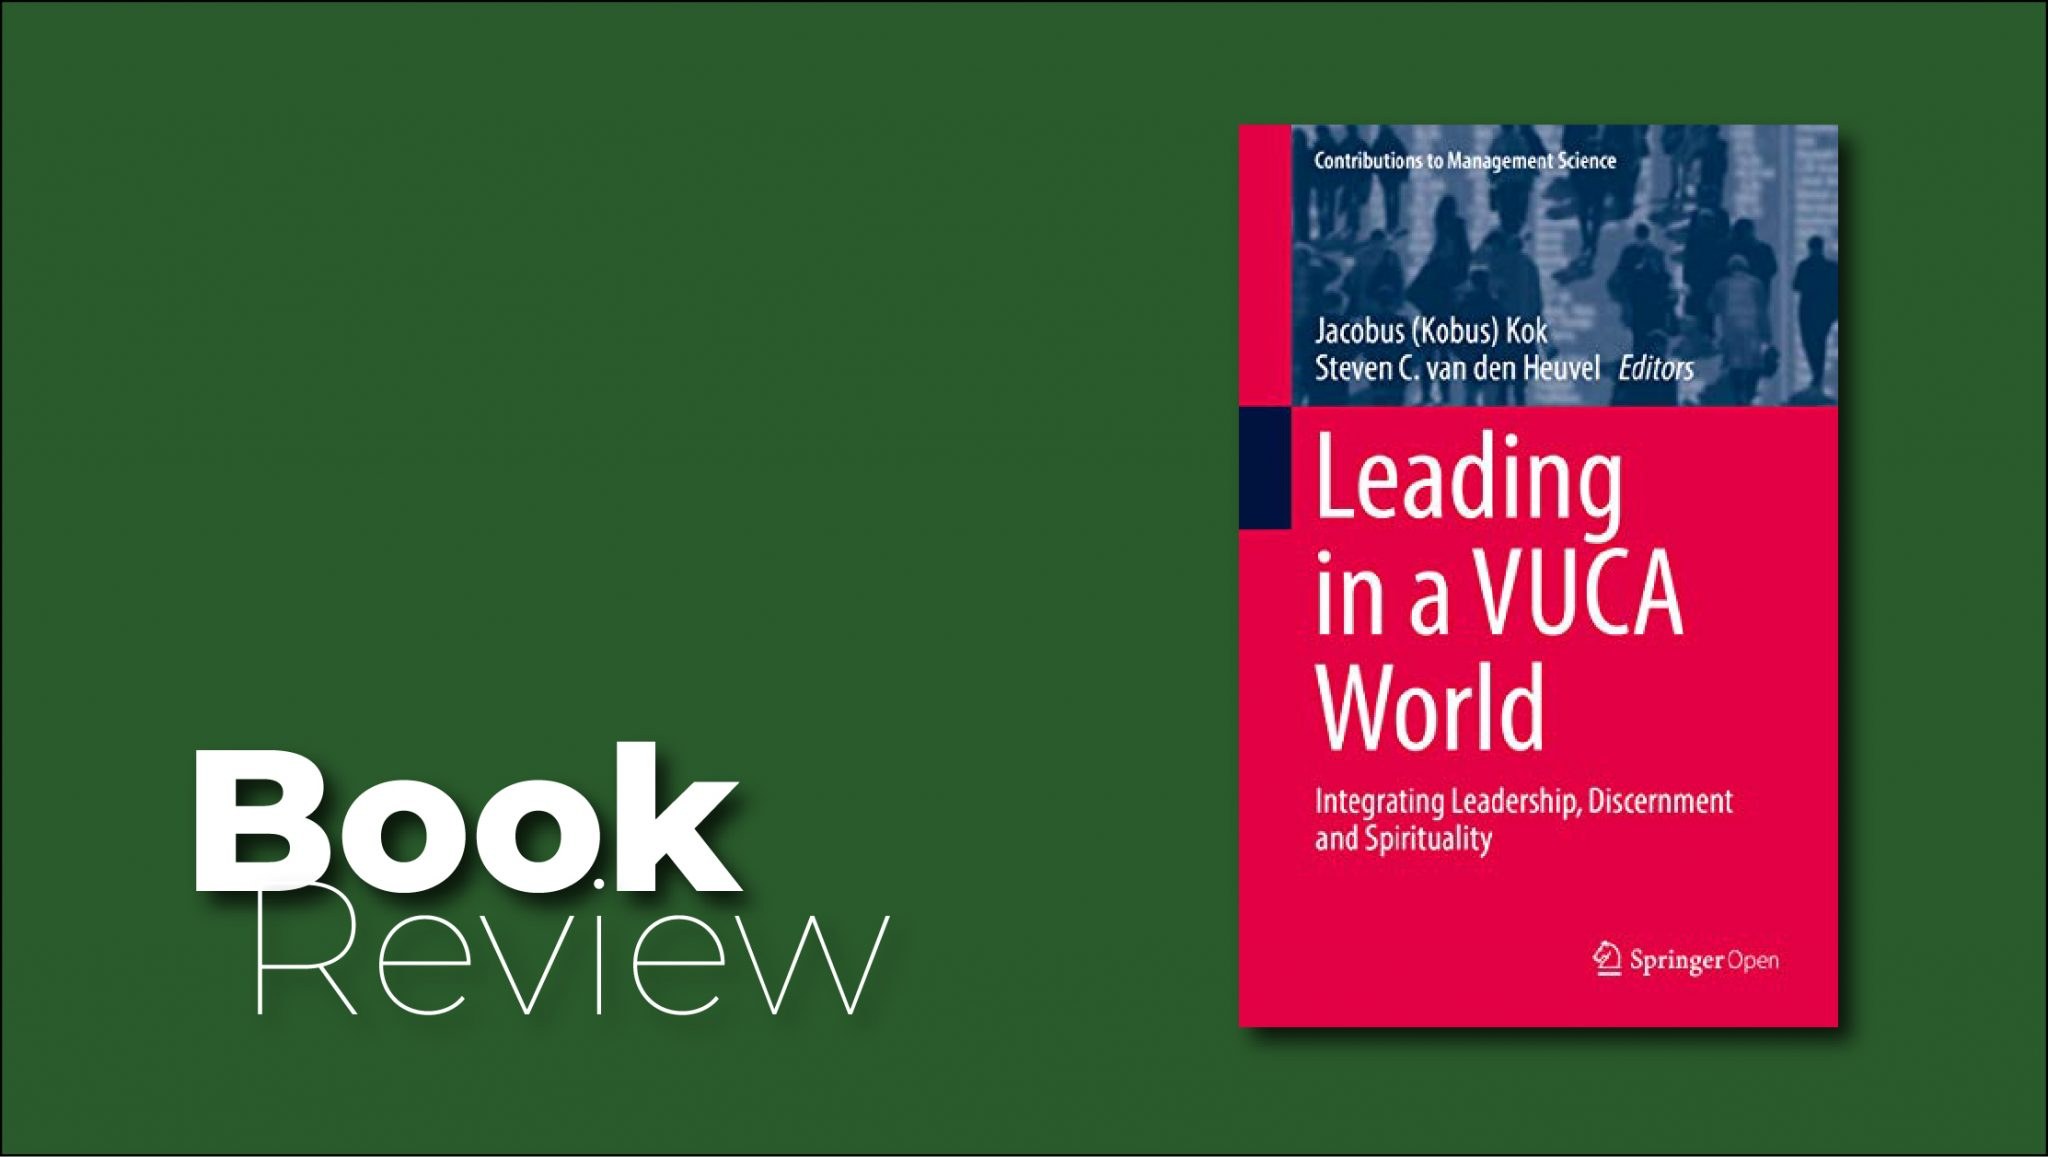 Book Review: Leading in a VUCA World